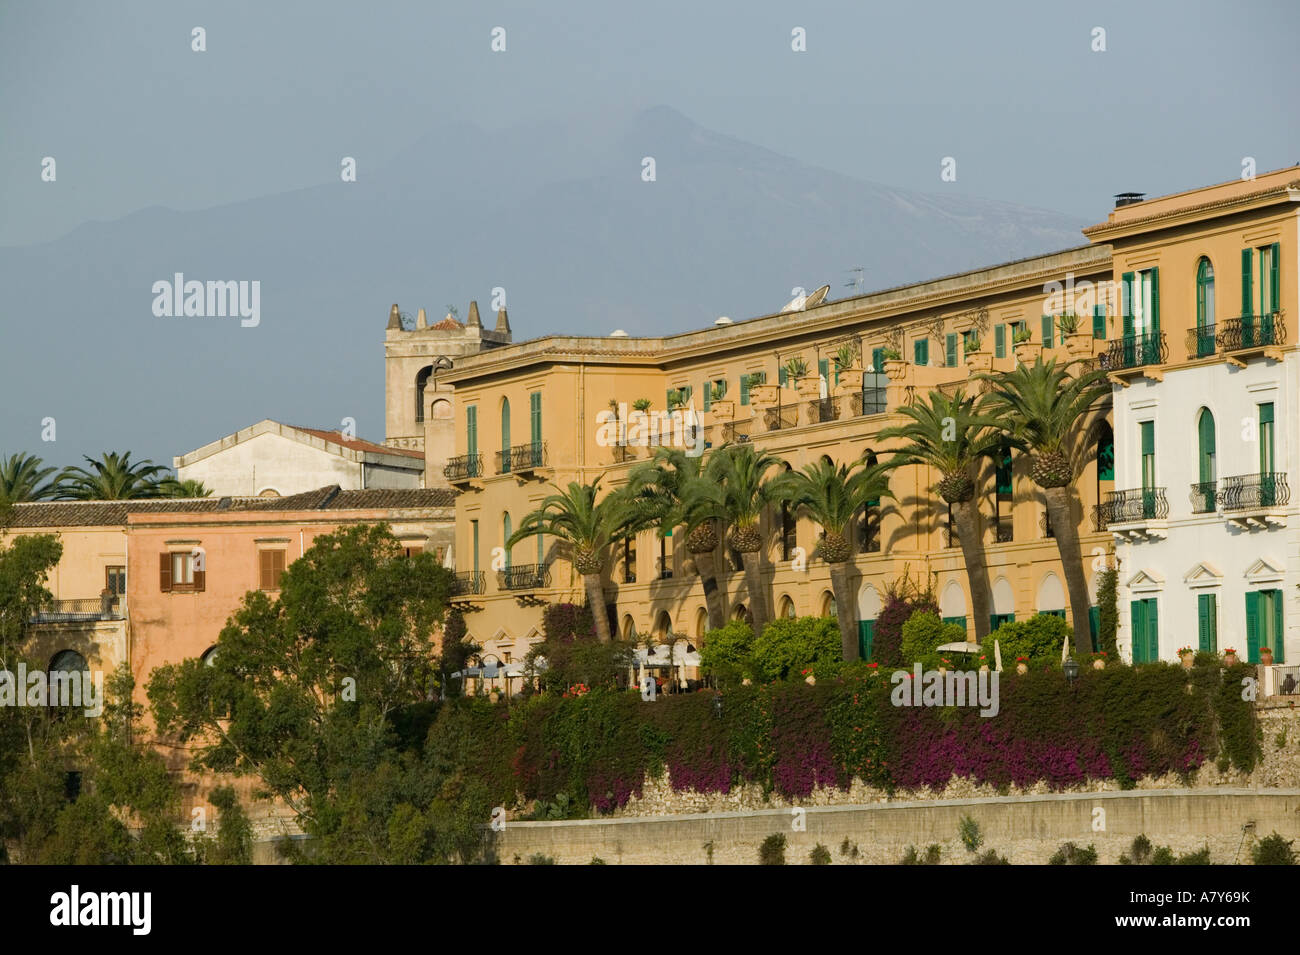 San Domenico Palace Hotel Oldest Most Famous Monastery In Italy Exterior View